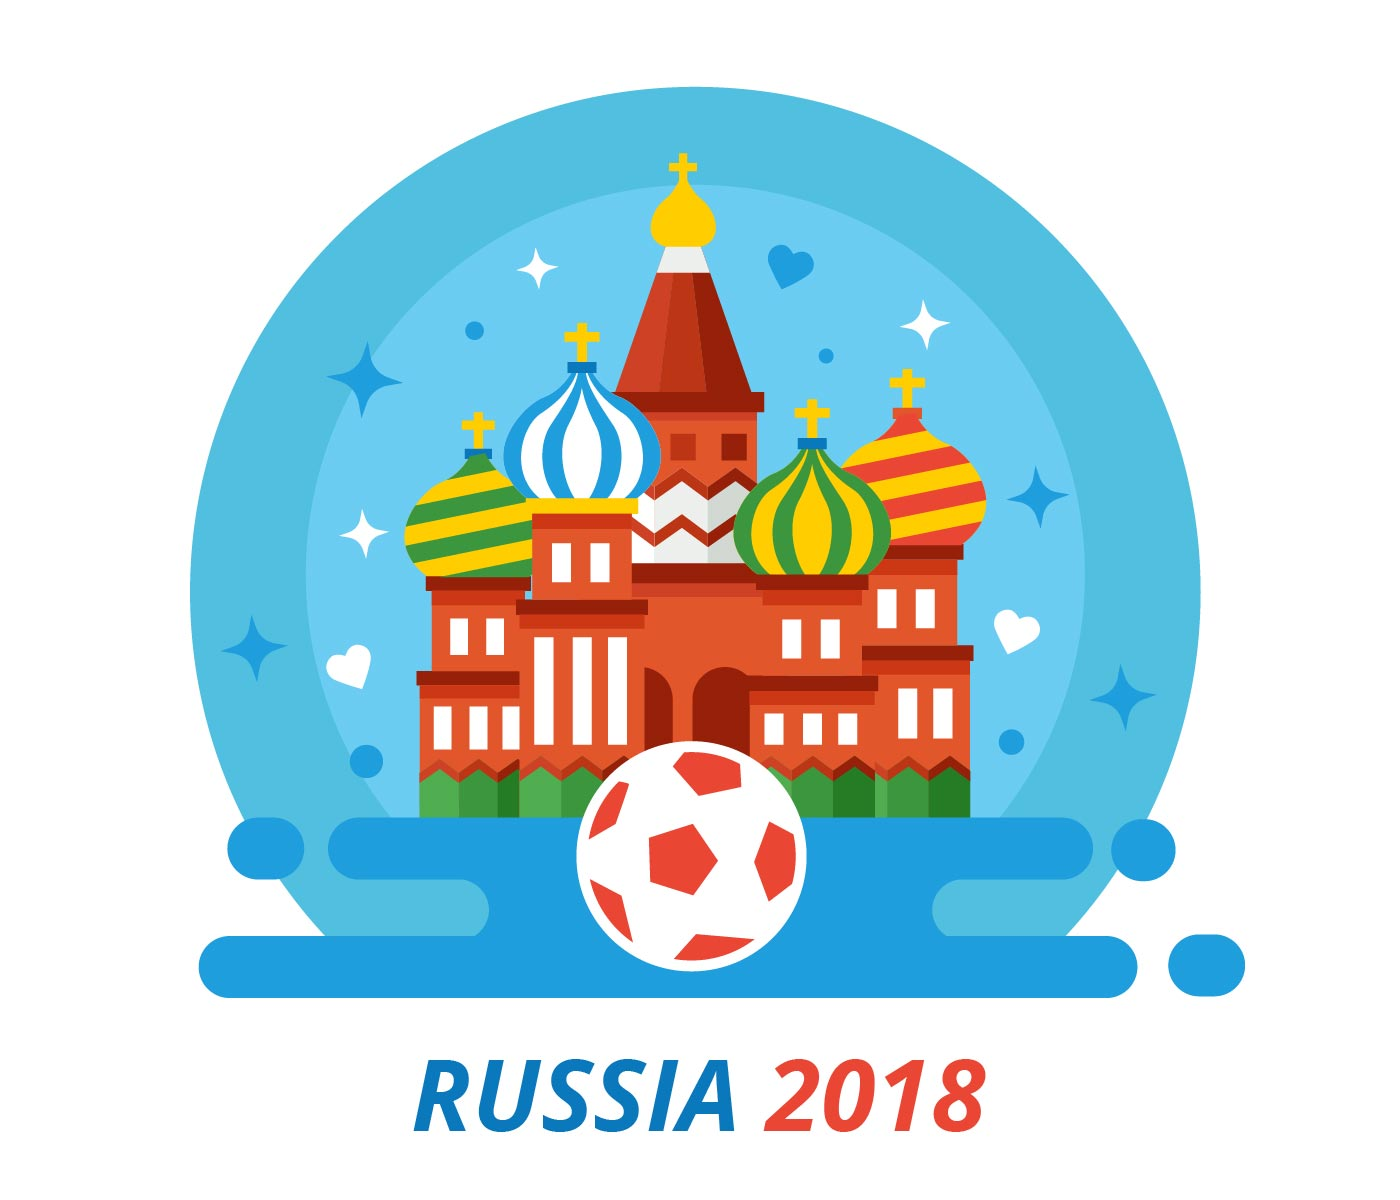 russia 2018 world cup vector download free vector art